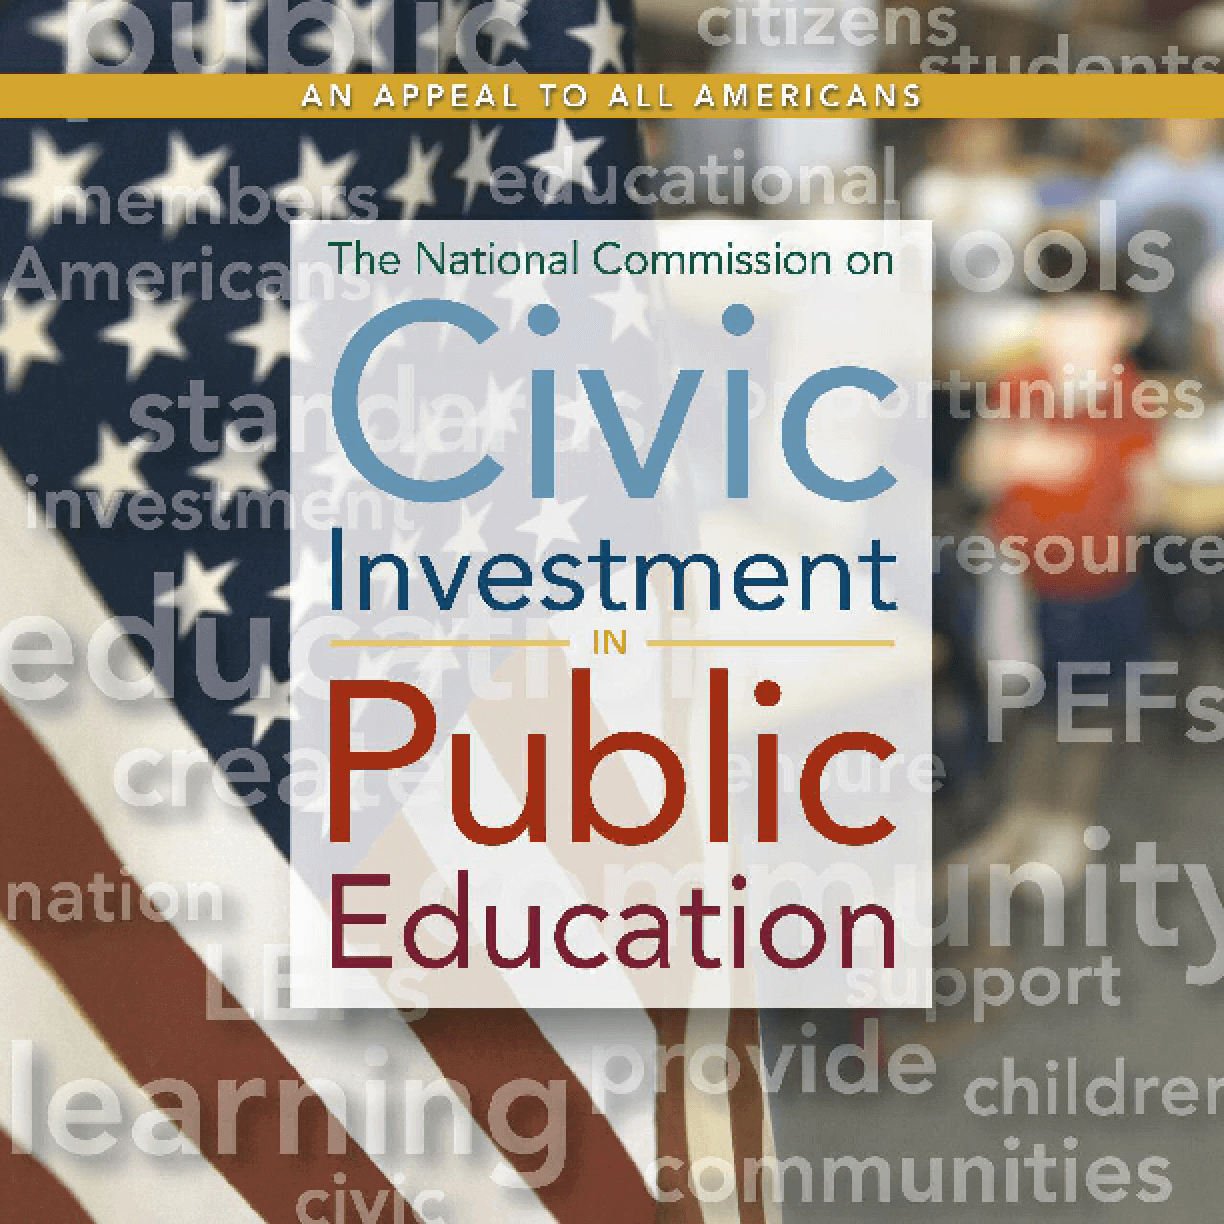 An Appeal to All Americans: National Commission on Civic Investment in Public Education